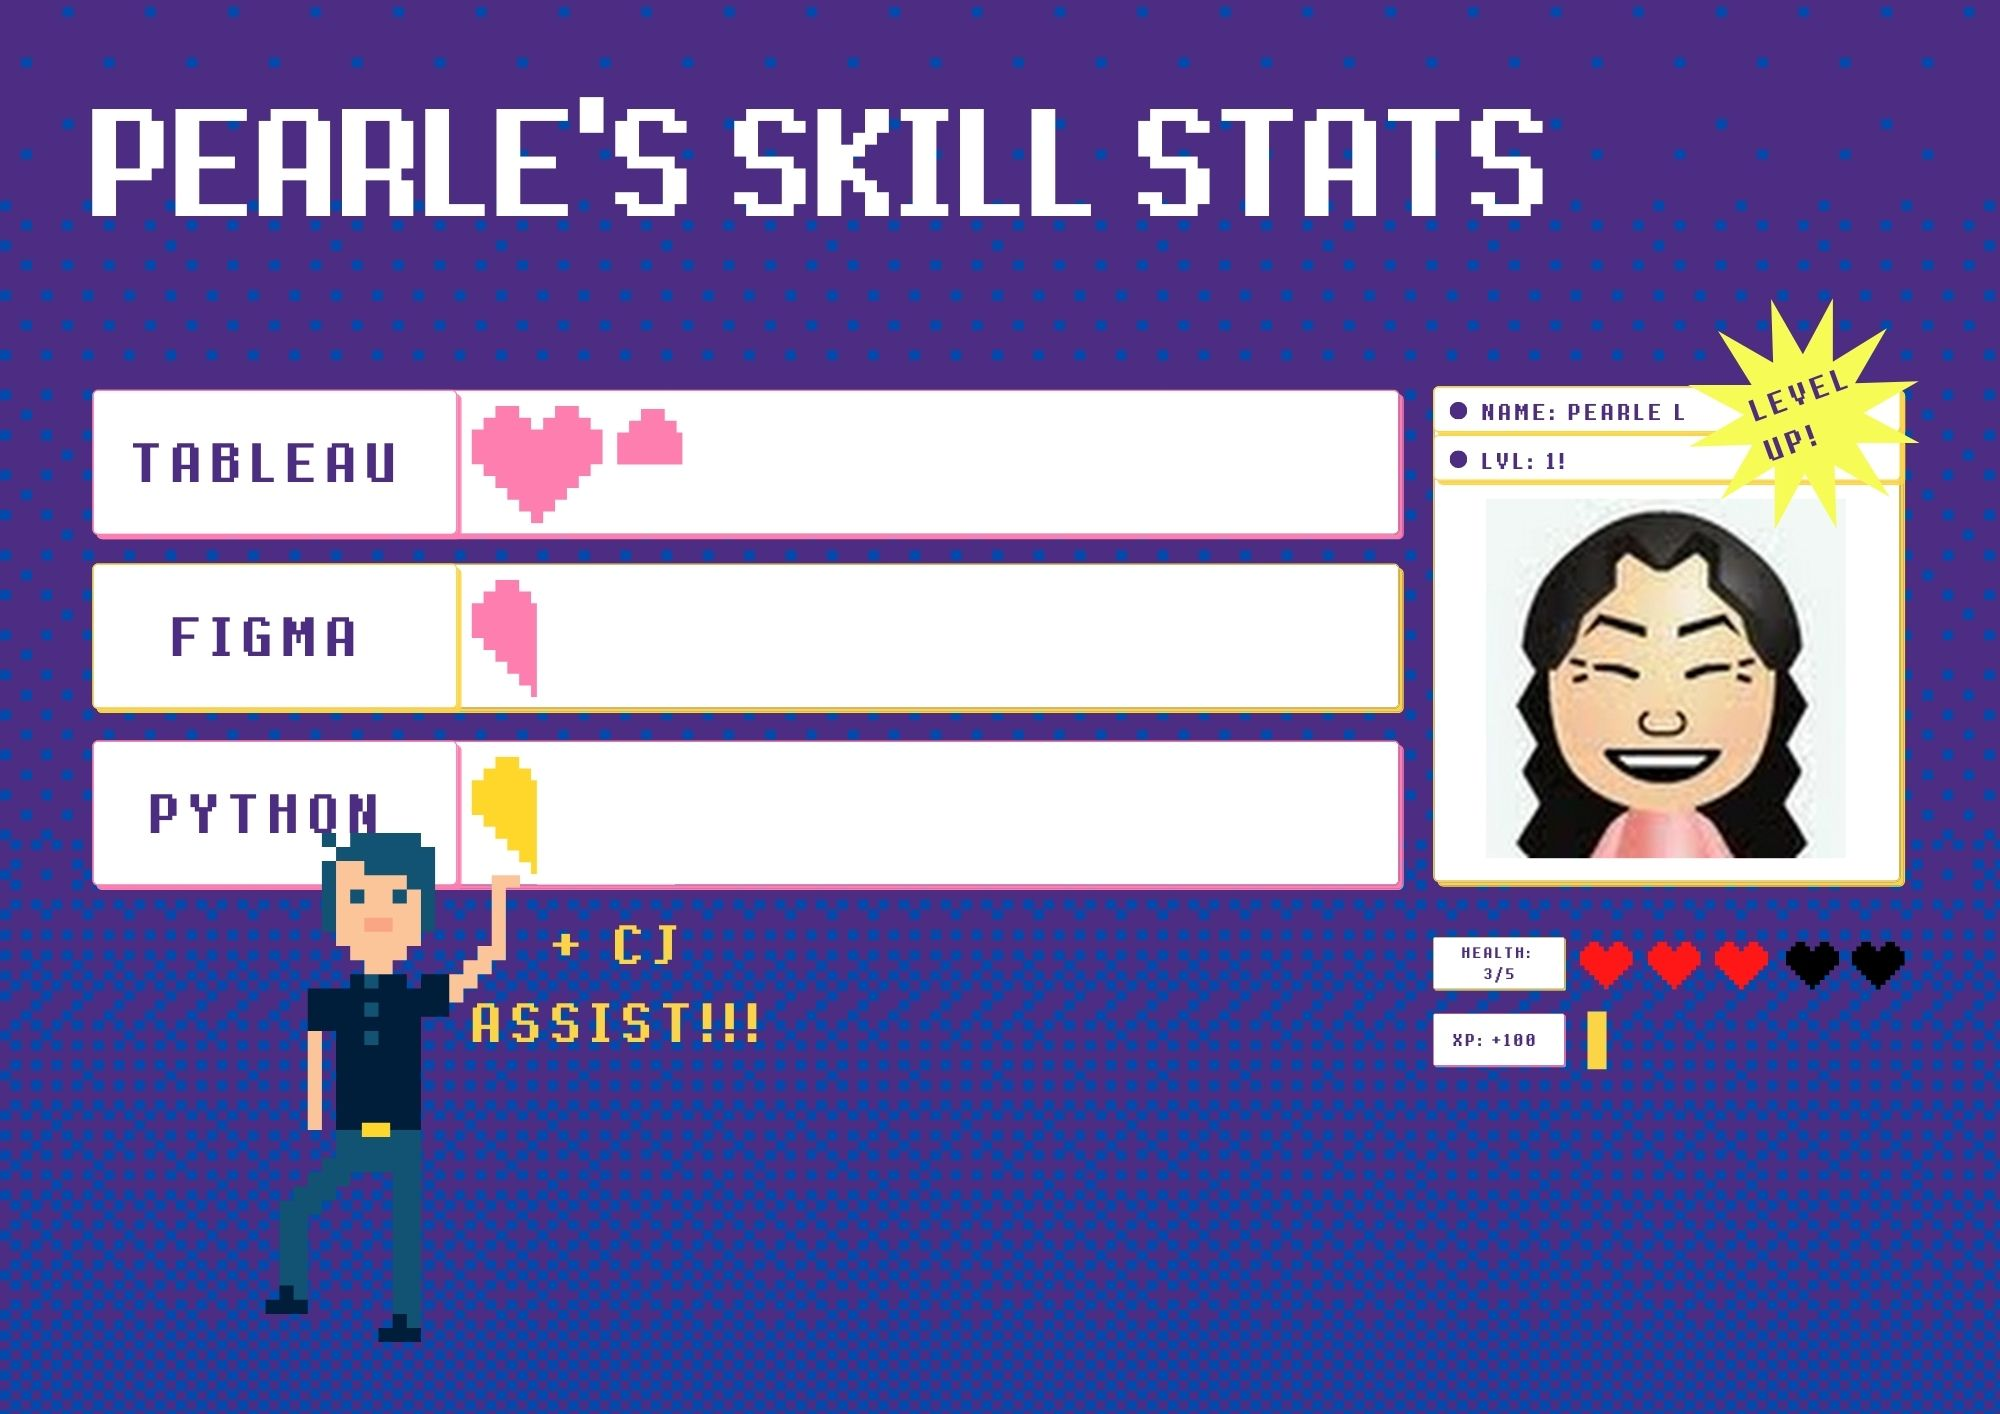 A purple card depicting Pearle's skills with Tableau, Figma, and Python, similar to a video game character's battle stats. Stats are Pearle's skills stats post coaching from CJ.